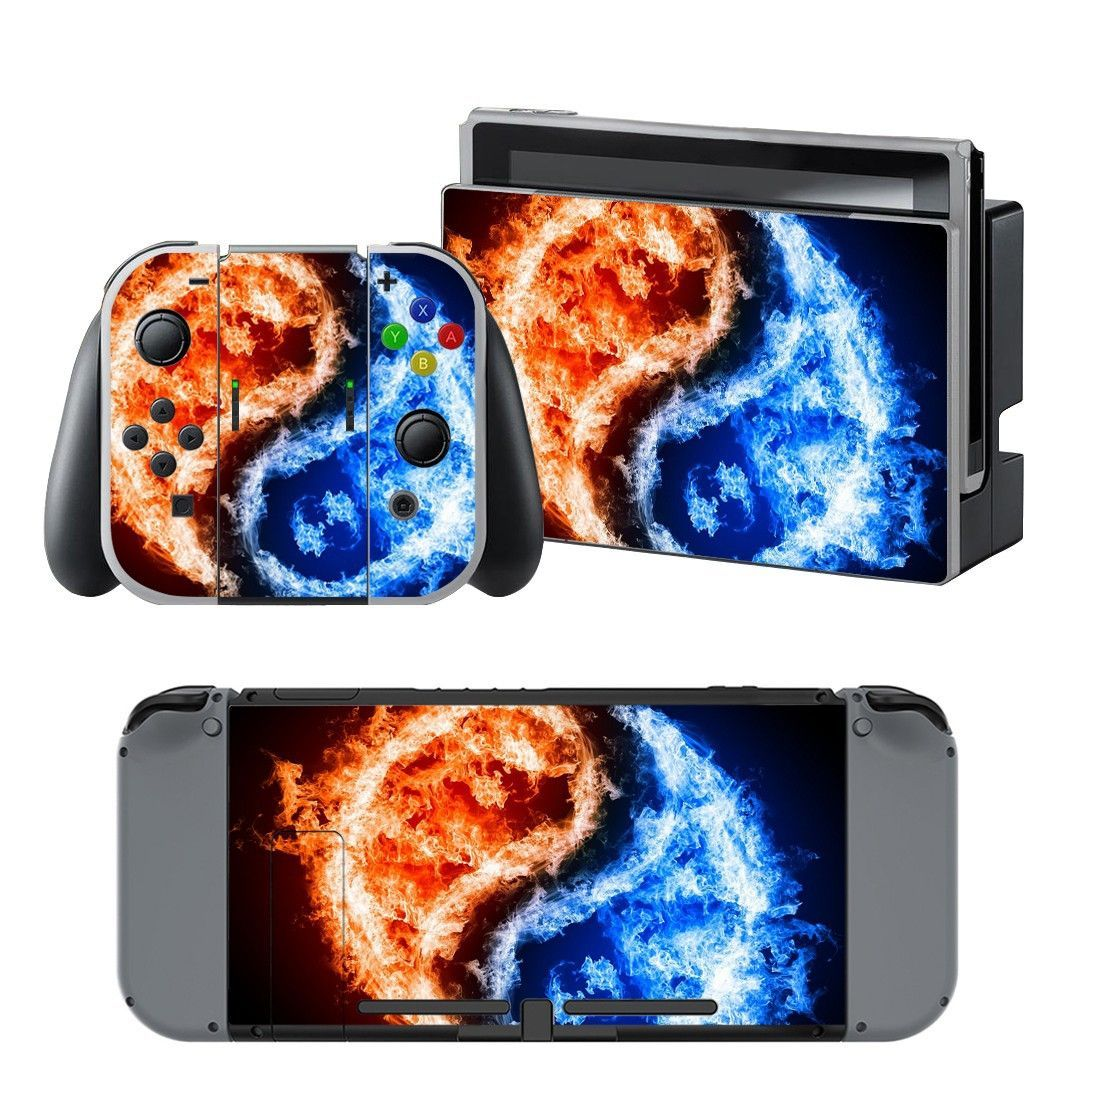 Cool Fire Design Vinyl Decal For Nintendo Switch Console